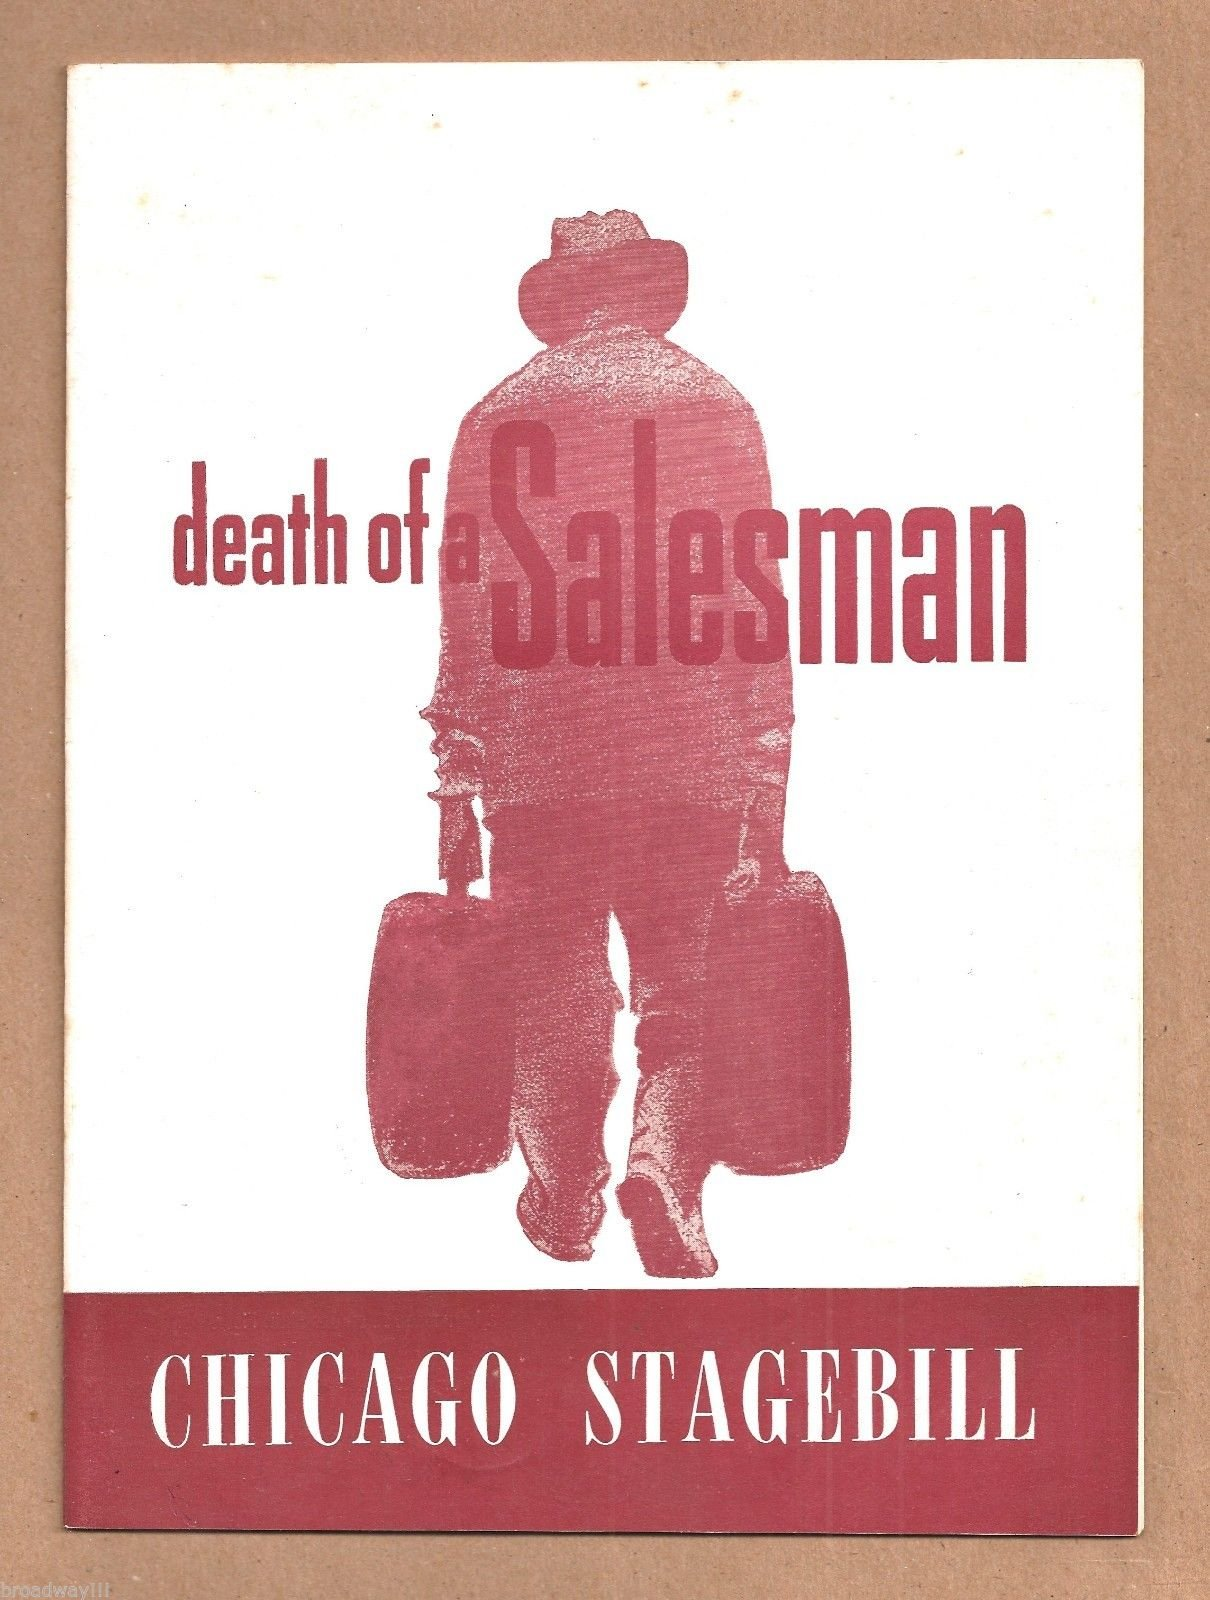 the theme of american dream in death of a salesman by arthur miller Death of a salesman at the lyttelton in london in 1996: alun armstrong as willy loman and louise jameson as the woman david thacker's production captured 'the poetic quality of miller's attack on a corrupt, venal system,' wrote michael billington.